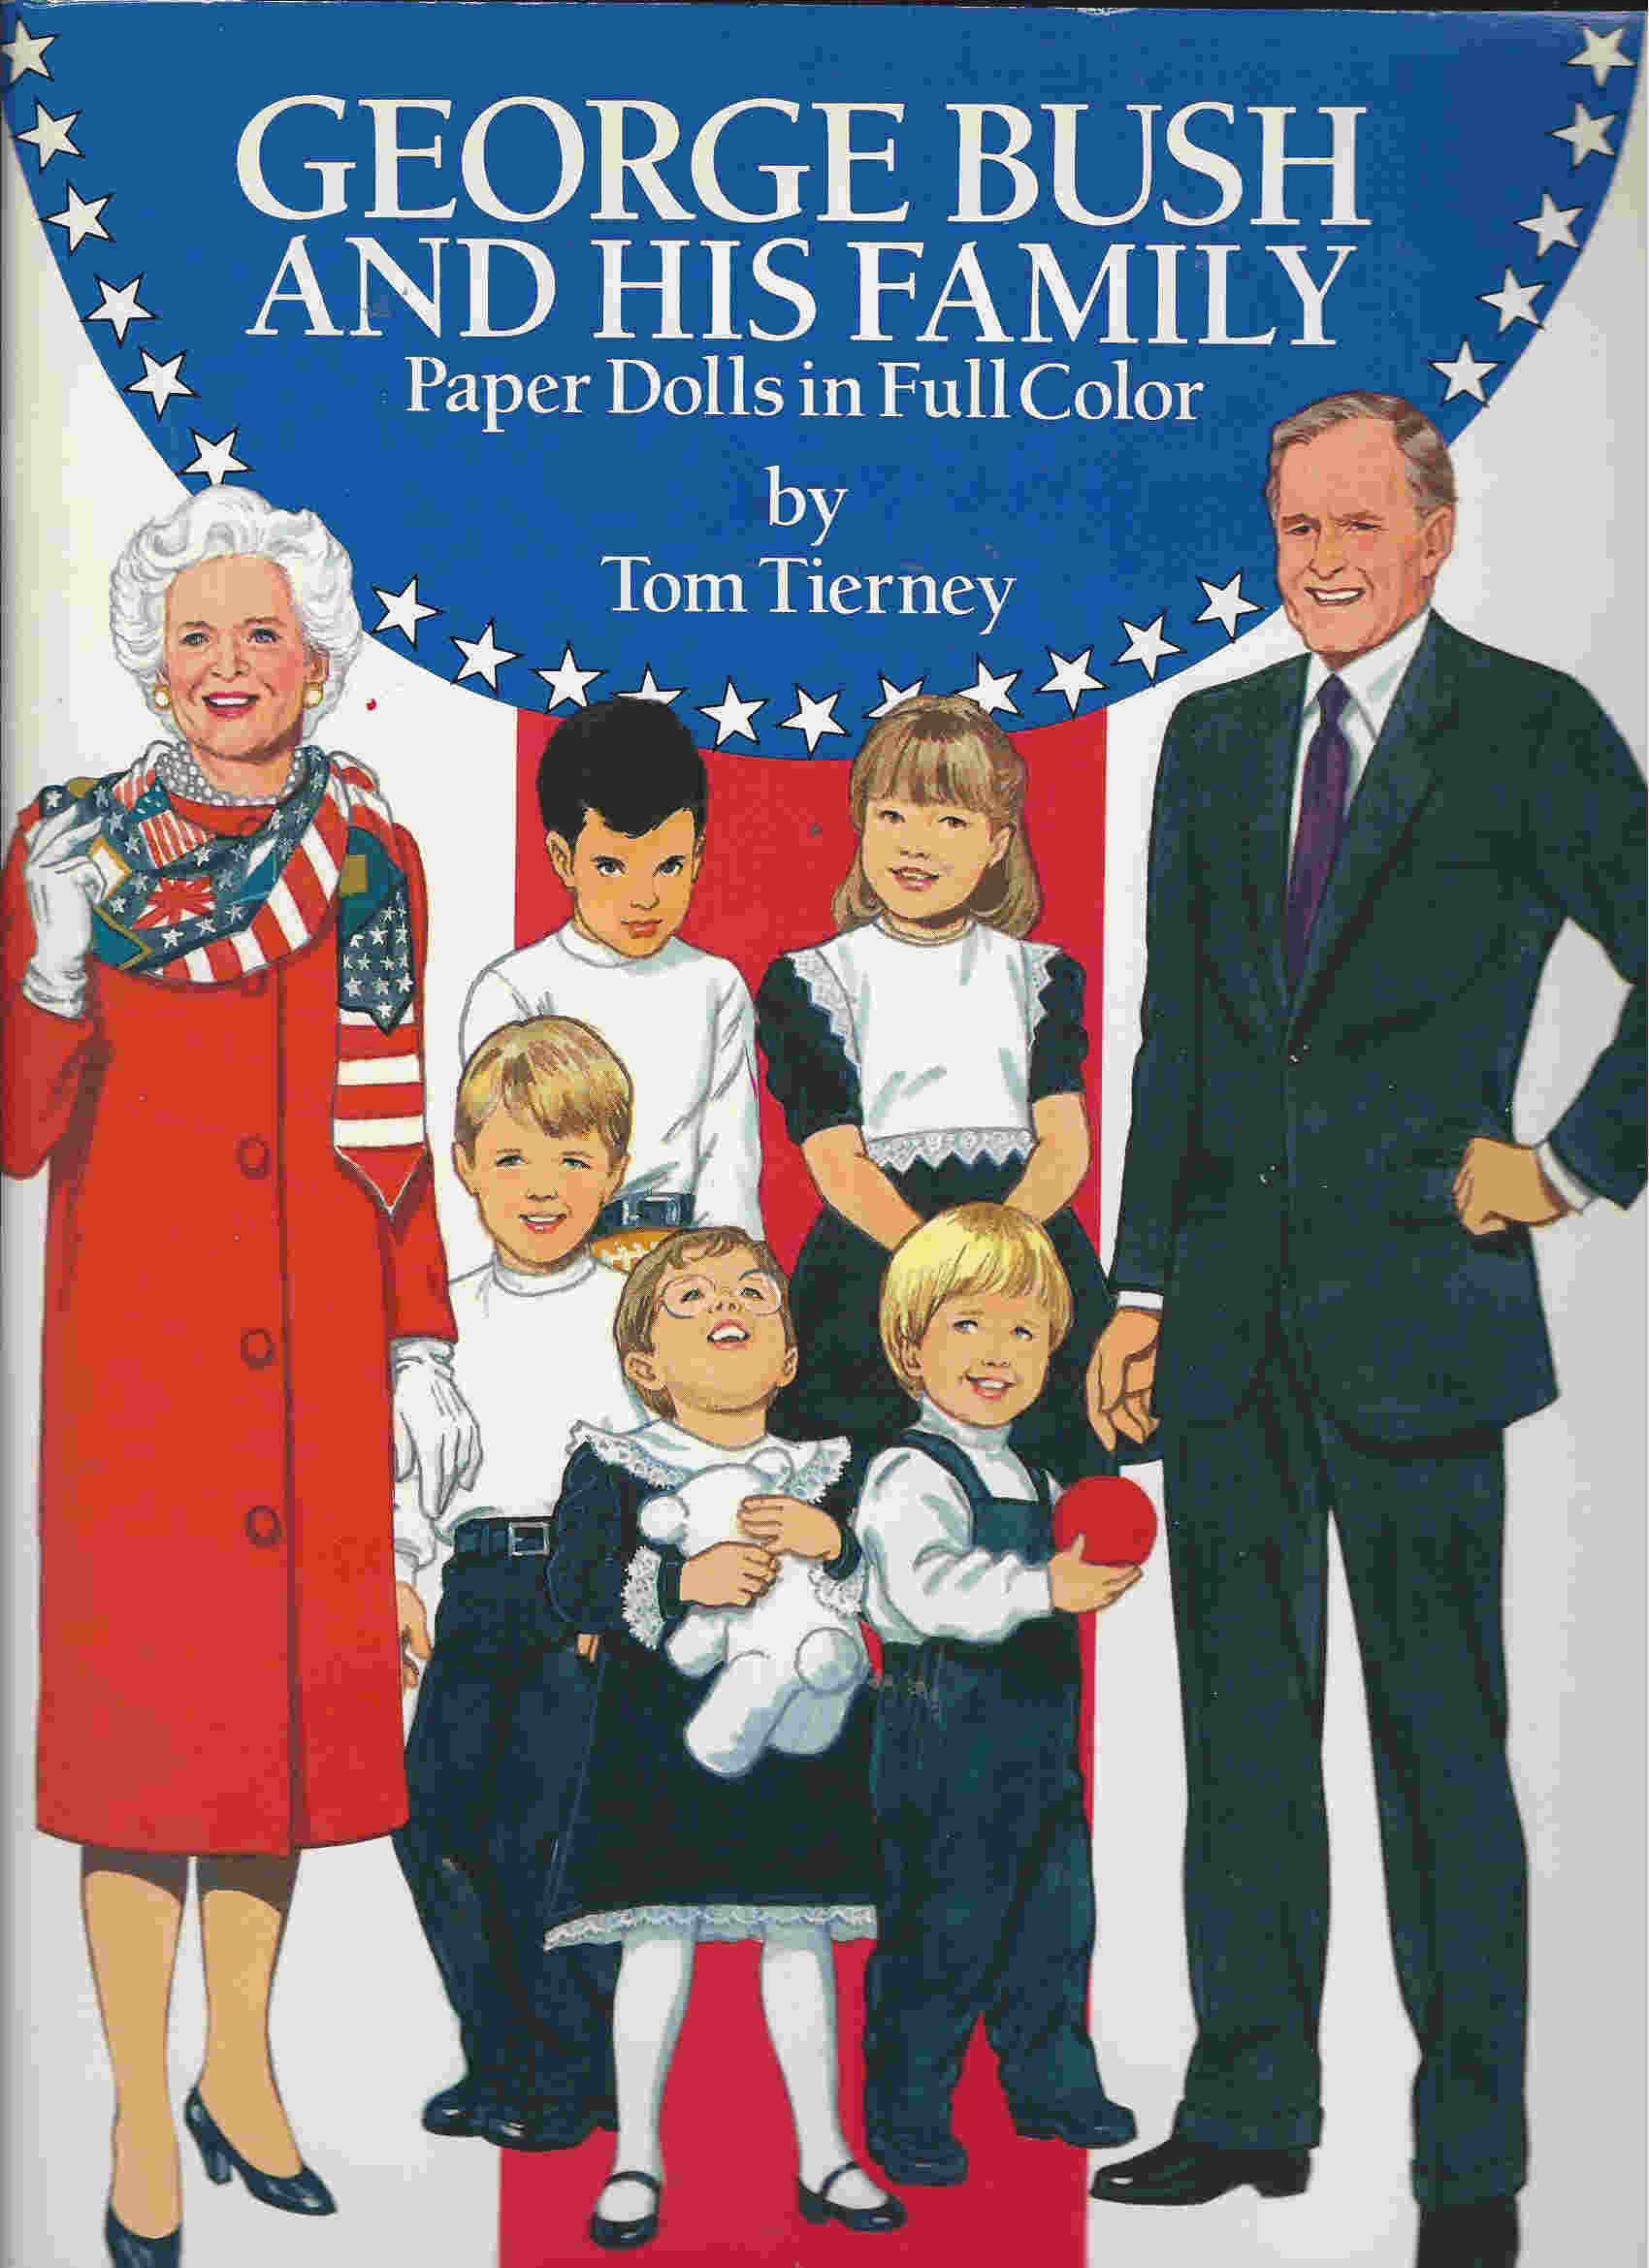 tom tierney president bush family paper dolls